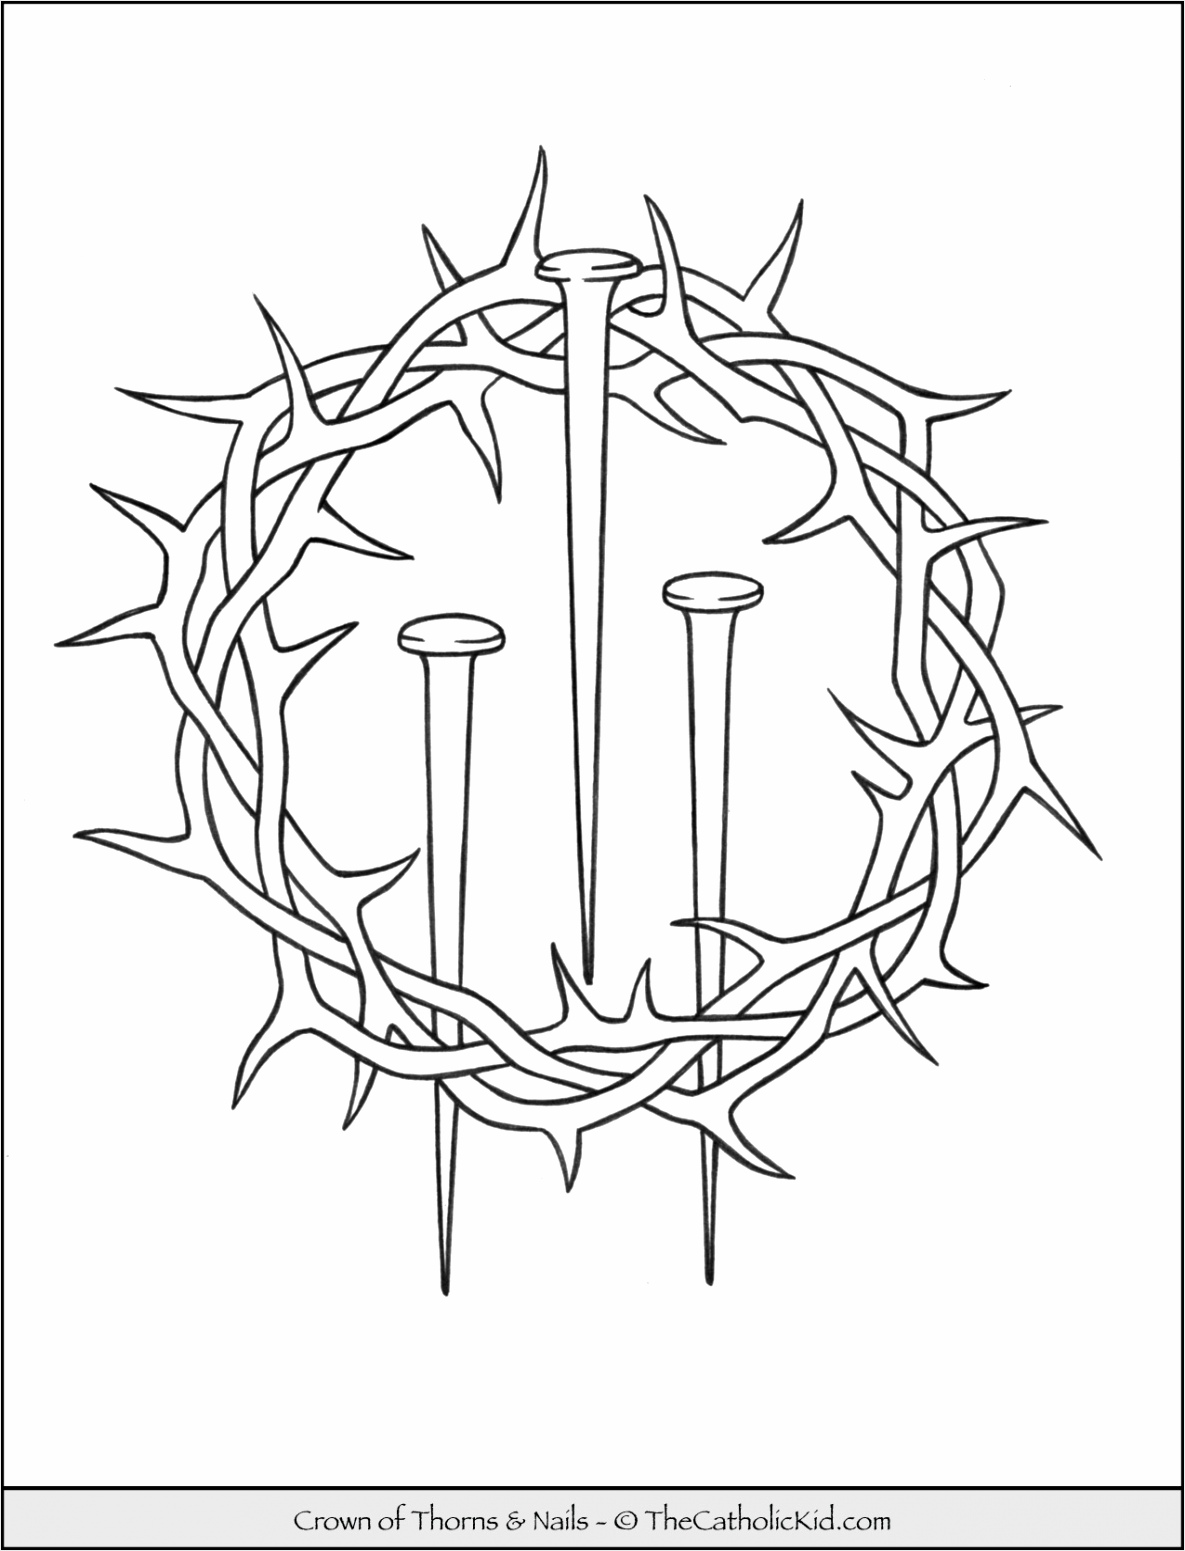 lent coloring pages page crown of thorns nails thecatholickid catholic icing mom pcrrt